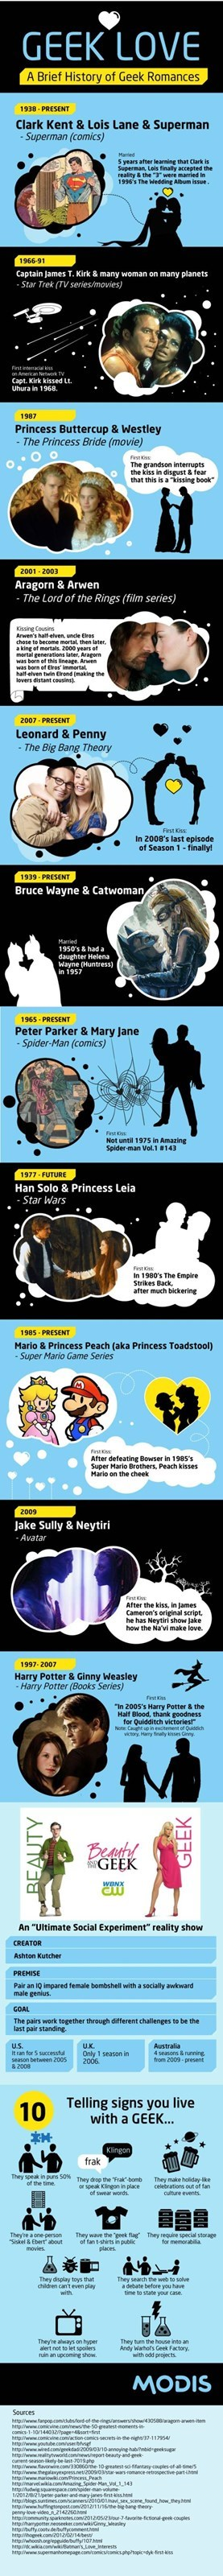 Chart infographic star wars nerdgasm - 7991187712